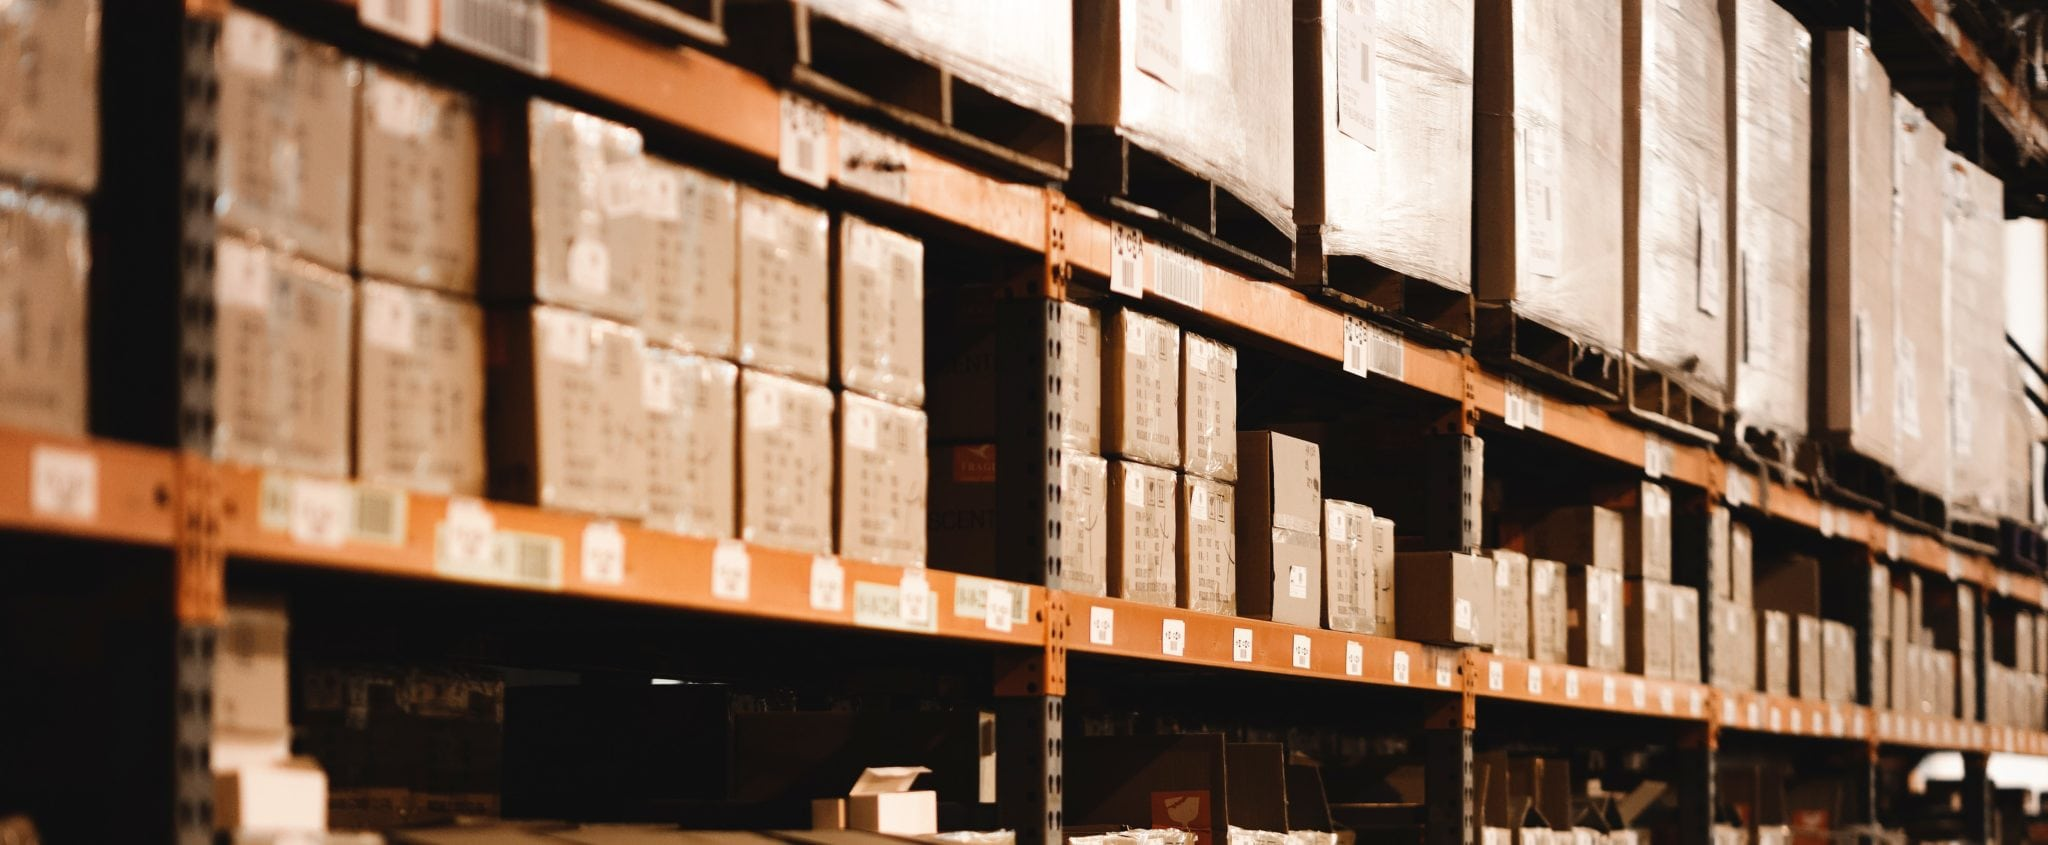 How to Find Your Ideal Fulfillment Service